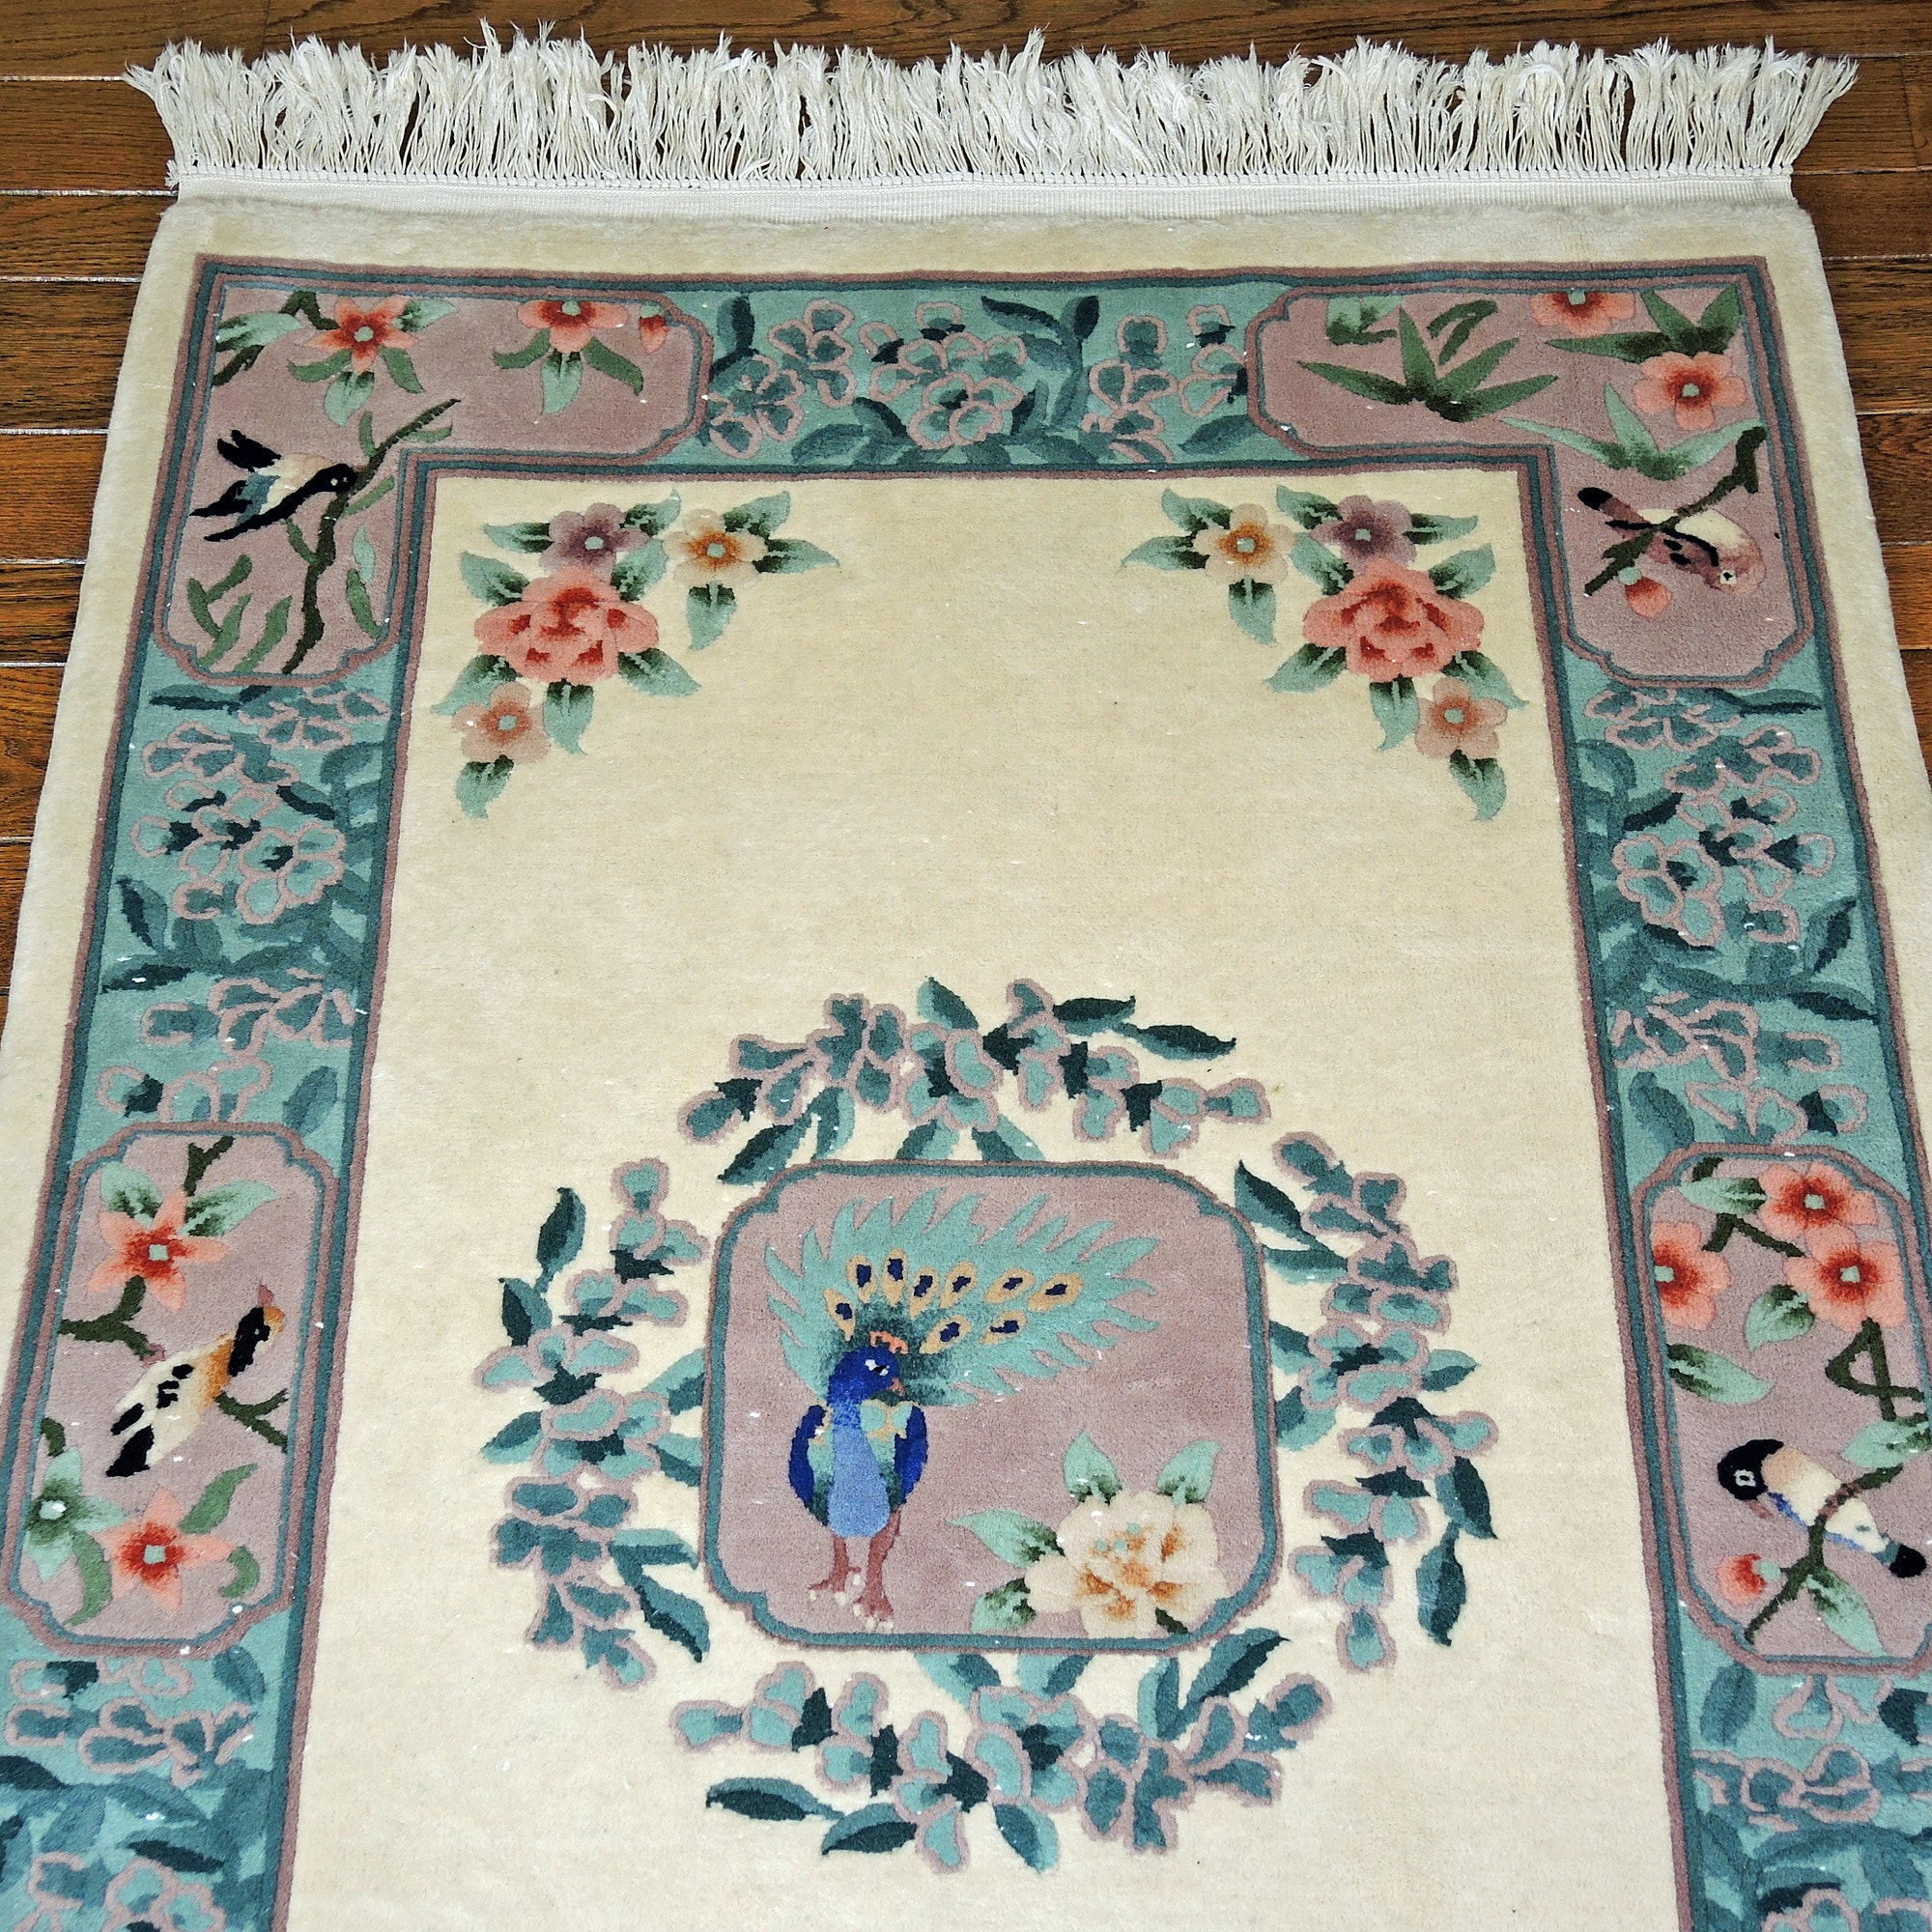 Finely Hand-Knotted Chinese Carved Pictorial Area Rug with Bird Design